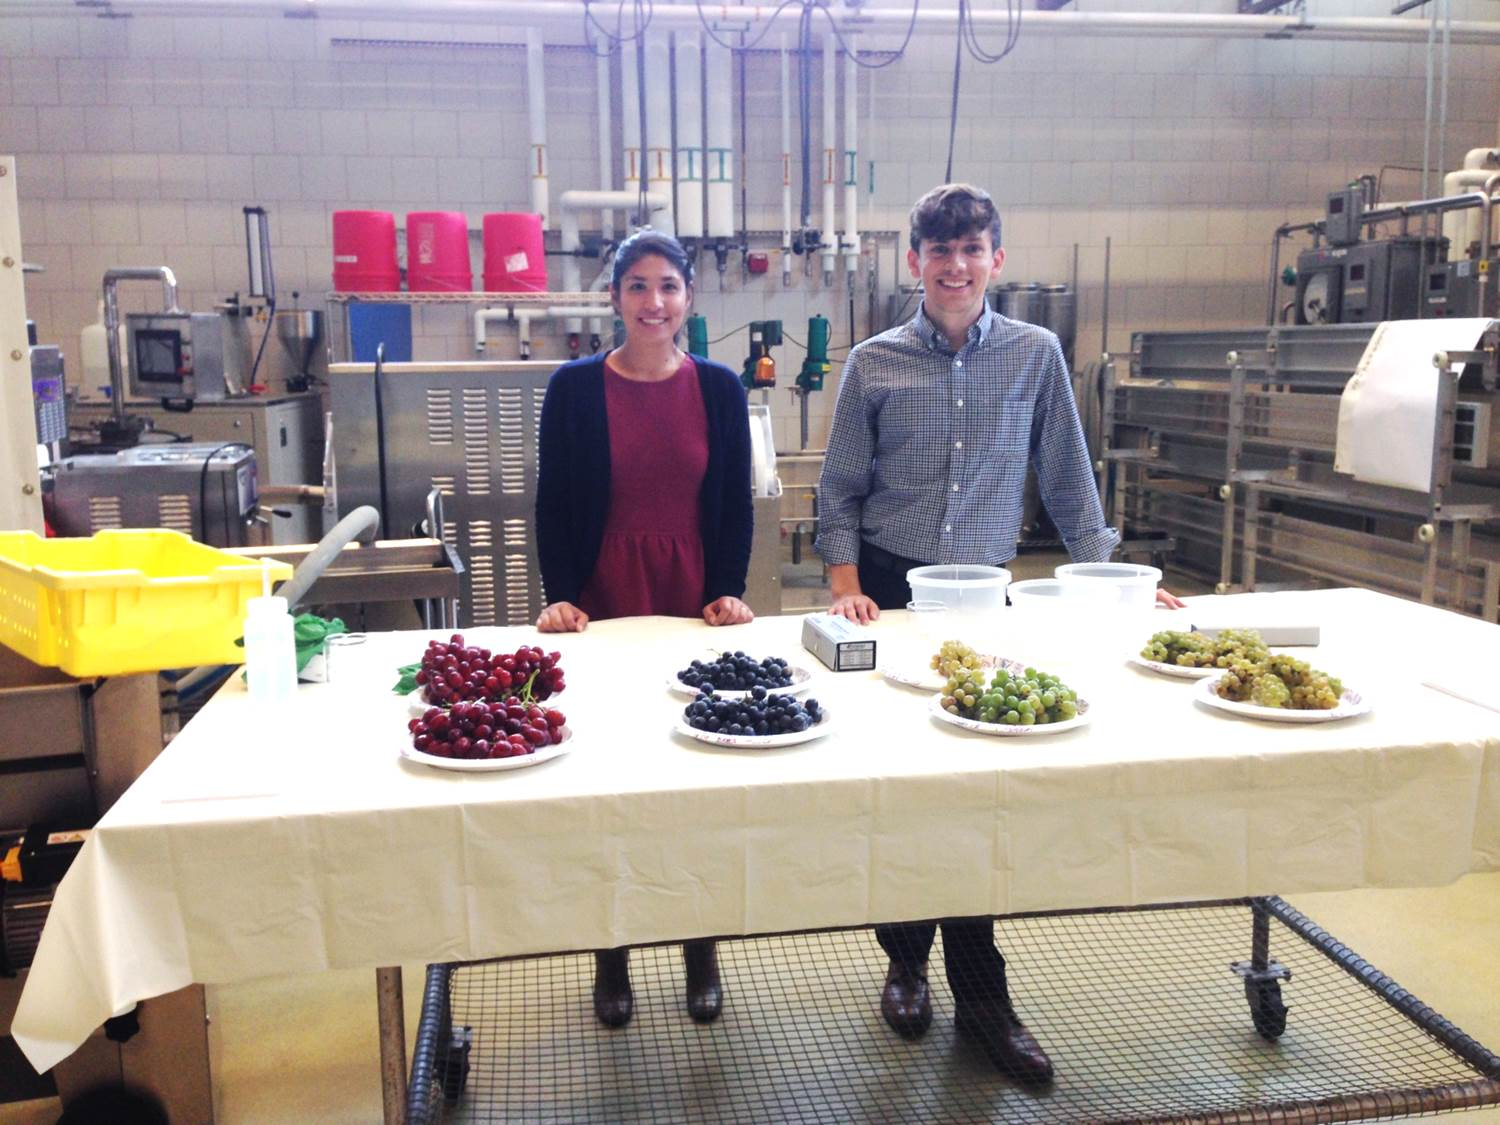 sensory training wine grapes u figure 2 graduate students maria and drew get ready to teach attendees about